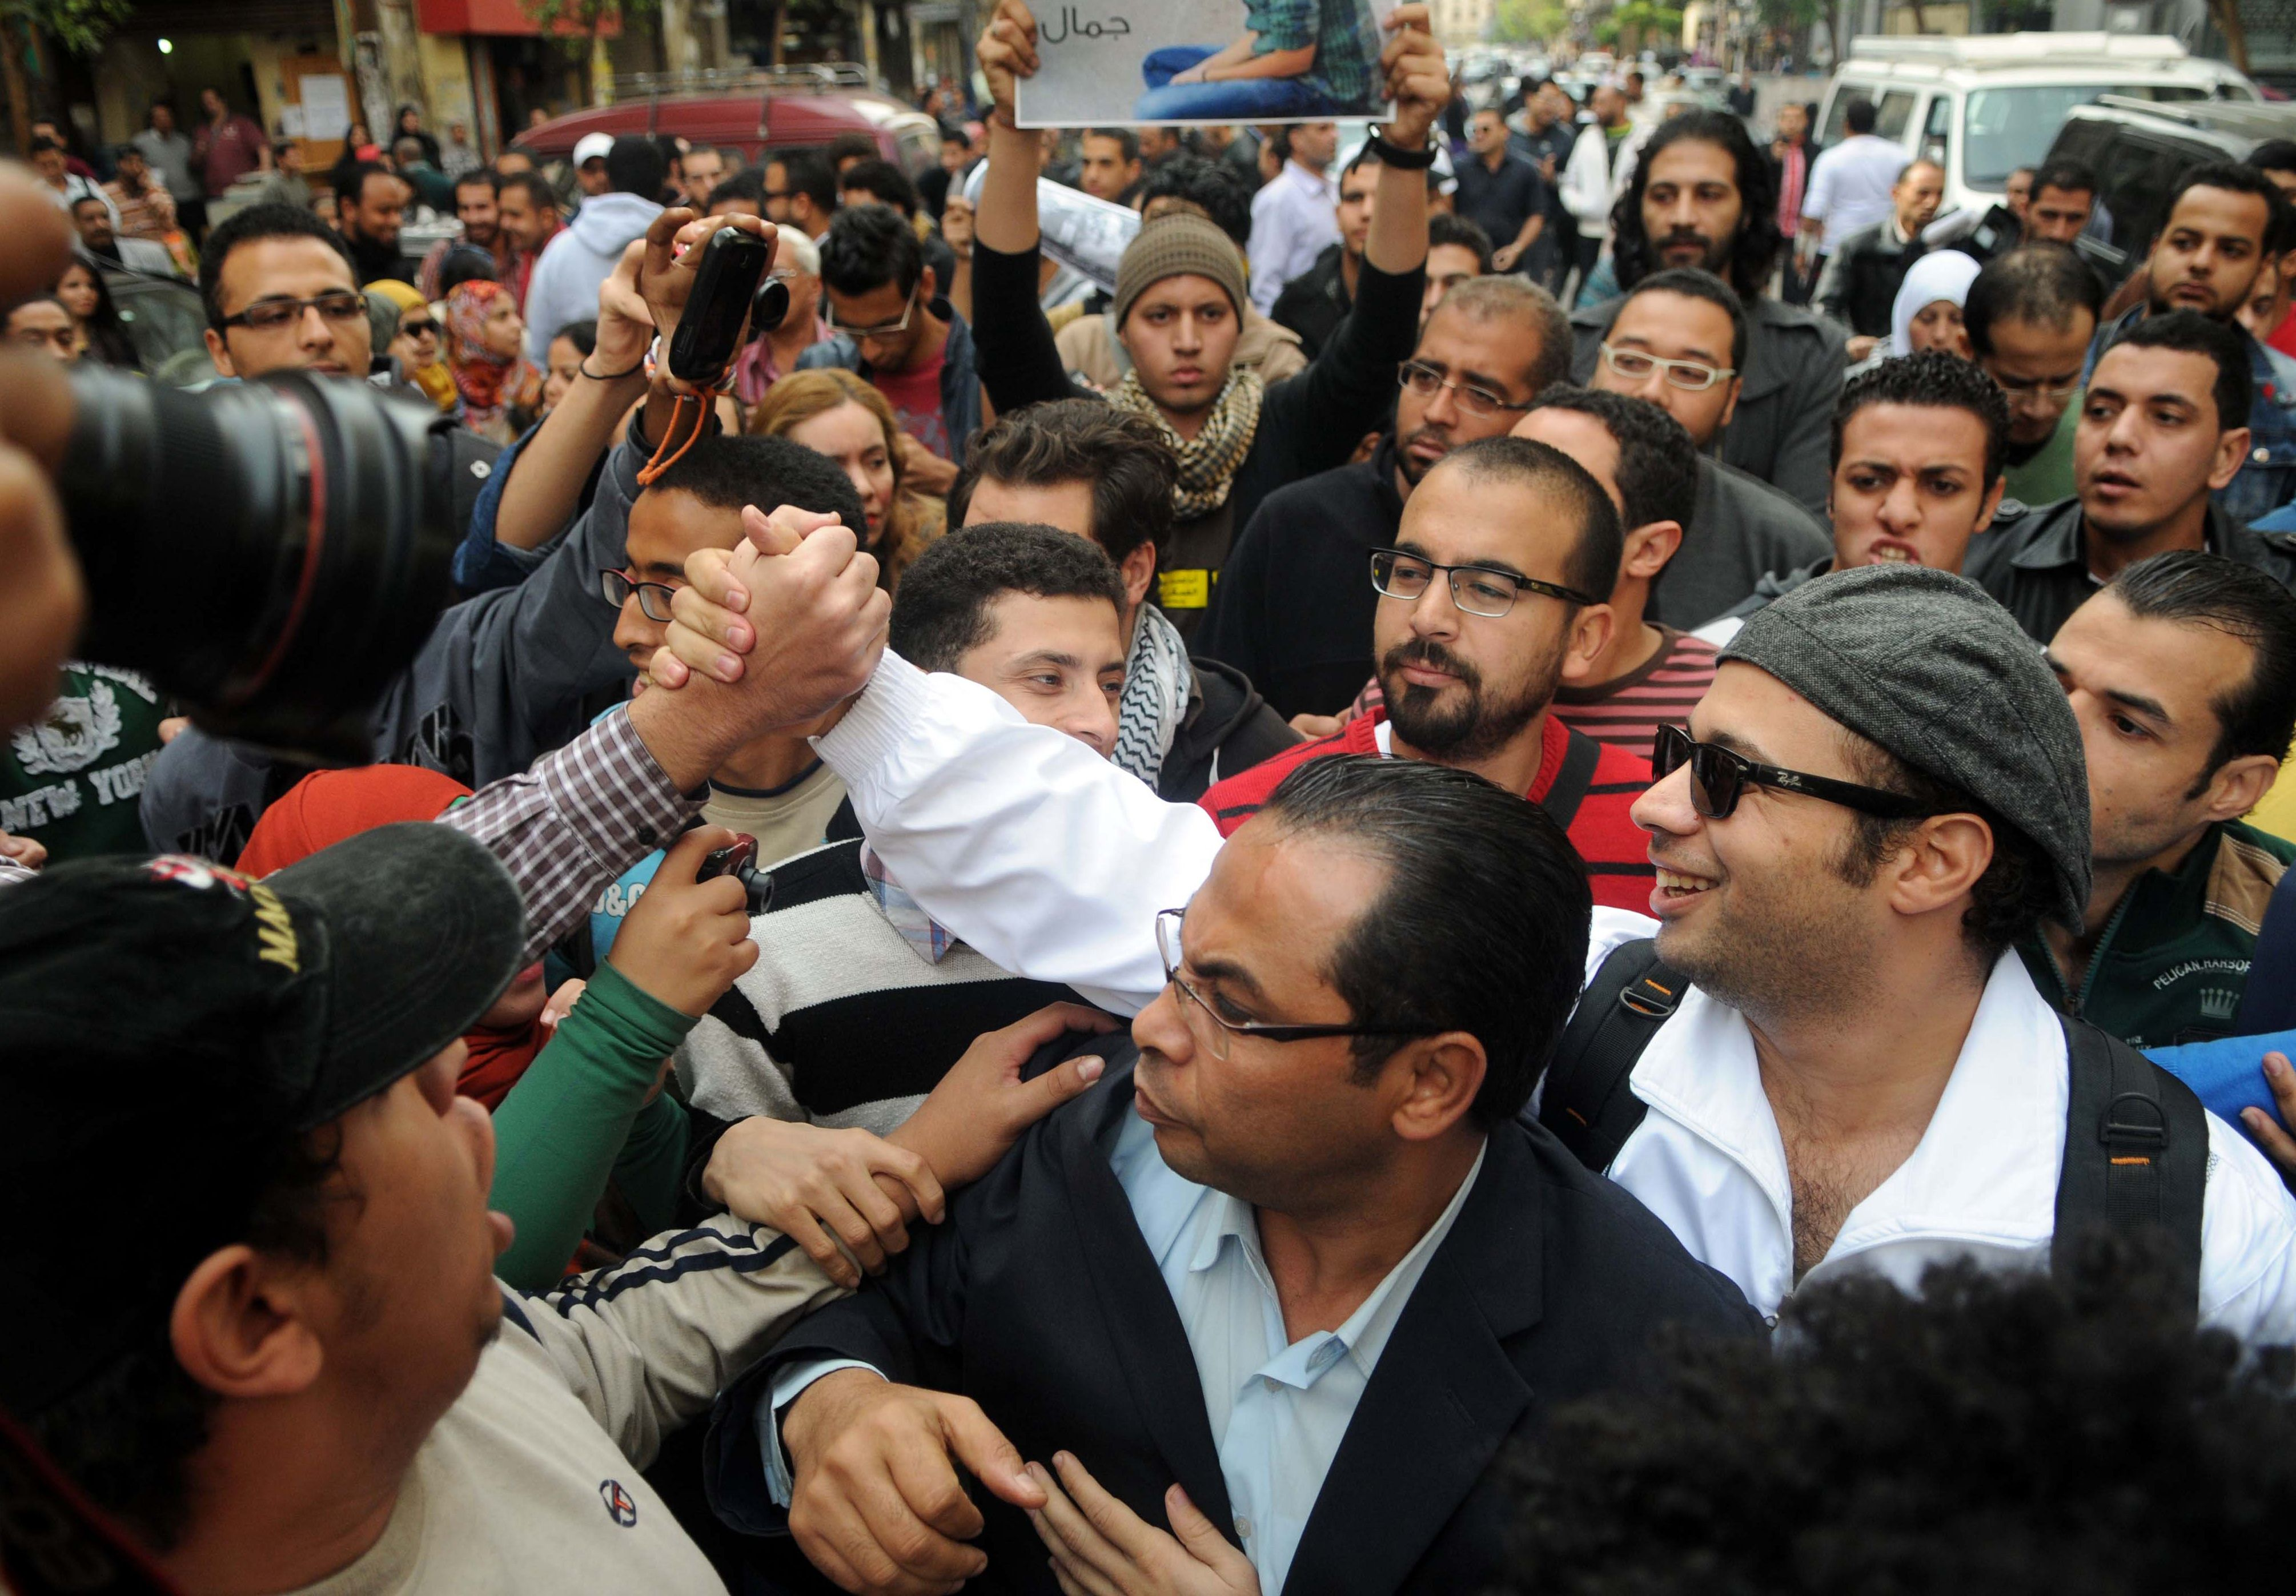 Ahmed Maher (R), co-founder of the 6 April youth movement that spearheaded Mubarak's ousting, is greeted by supporters as he comes to hand himself in to prosecutors on November 30, 2013 in the Egyptian capital, Cairo after an arrest warrant was issued on charges of inciting demonstrations against the new protest law. Ahmed Maher was surrounded upon his arrival by dozens of supporters who chanted slogans demanding the release of other detained activists.  (AFP PHOTO/ STR)